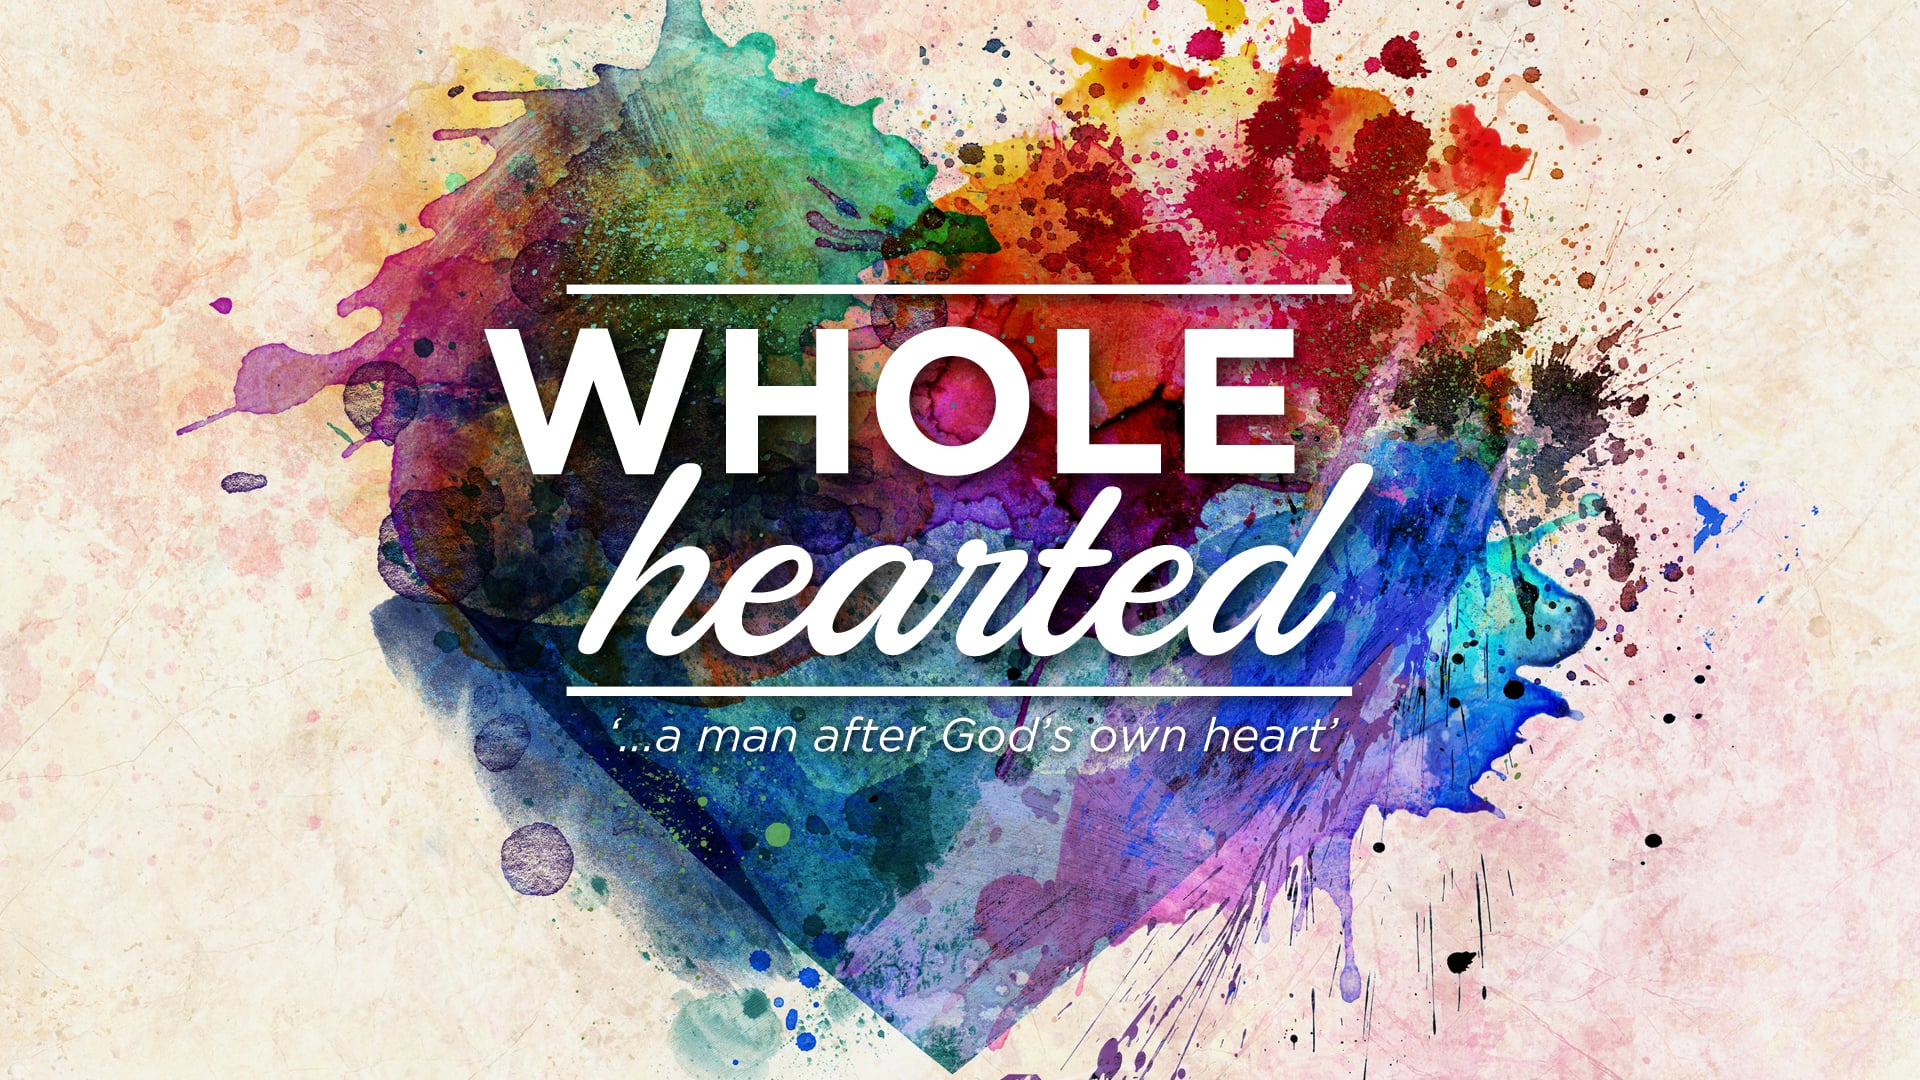 Whole-hearted - Part 1